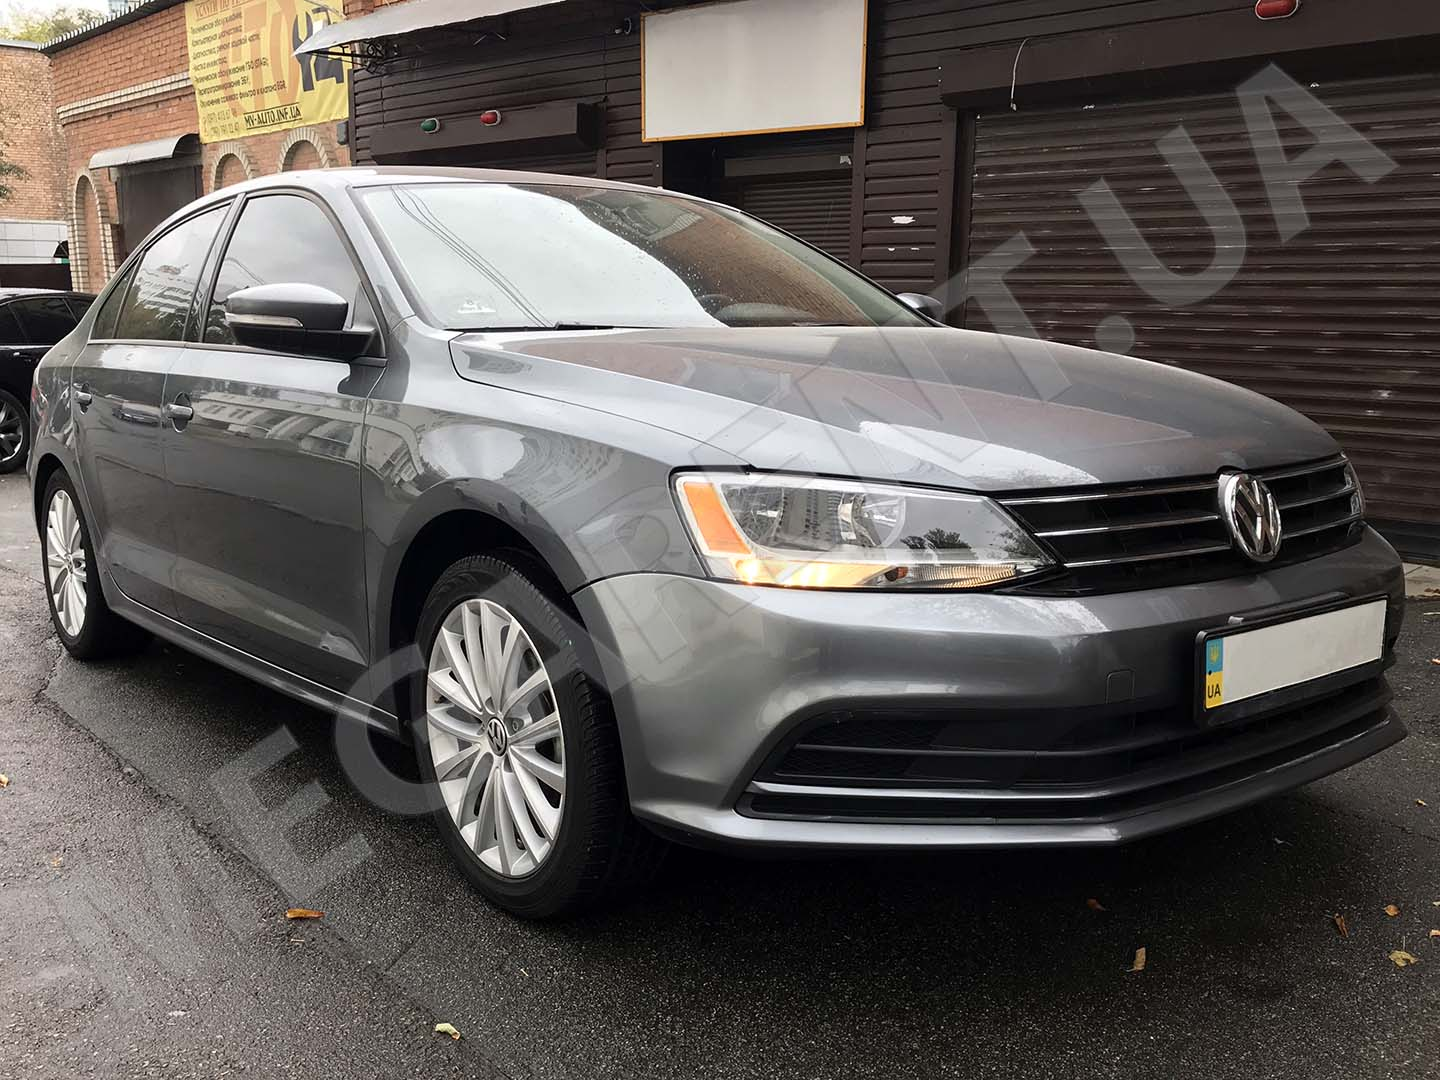 Rent a car Volkswagen Jetta 2015 in Kyiv - Megarent